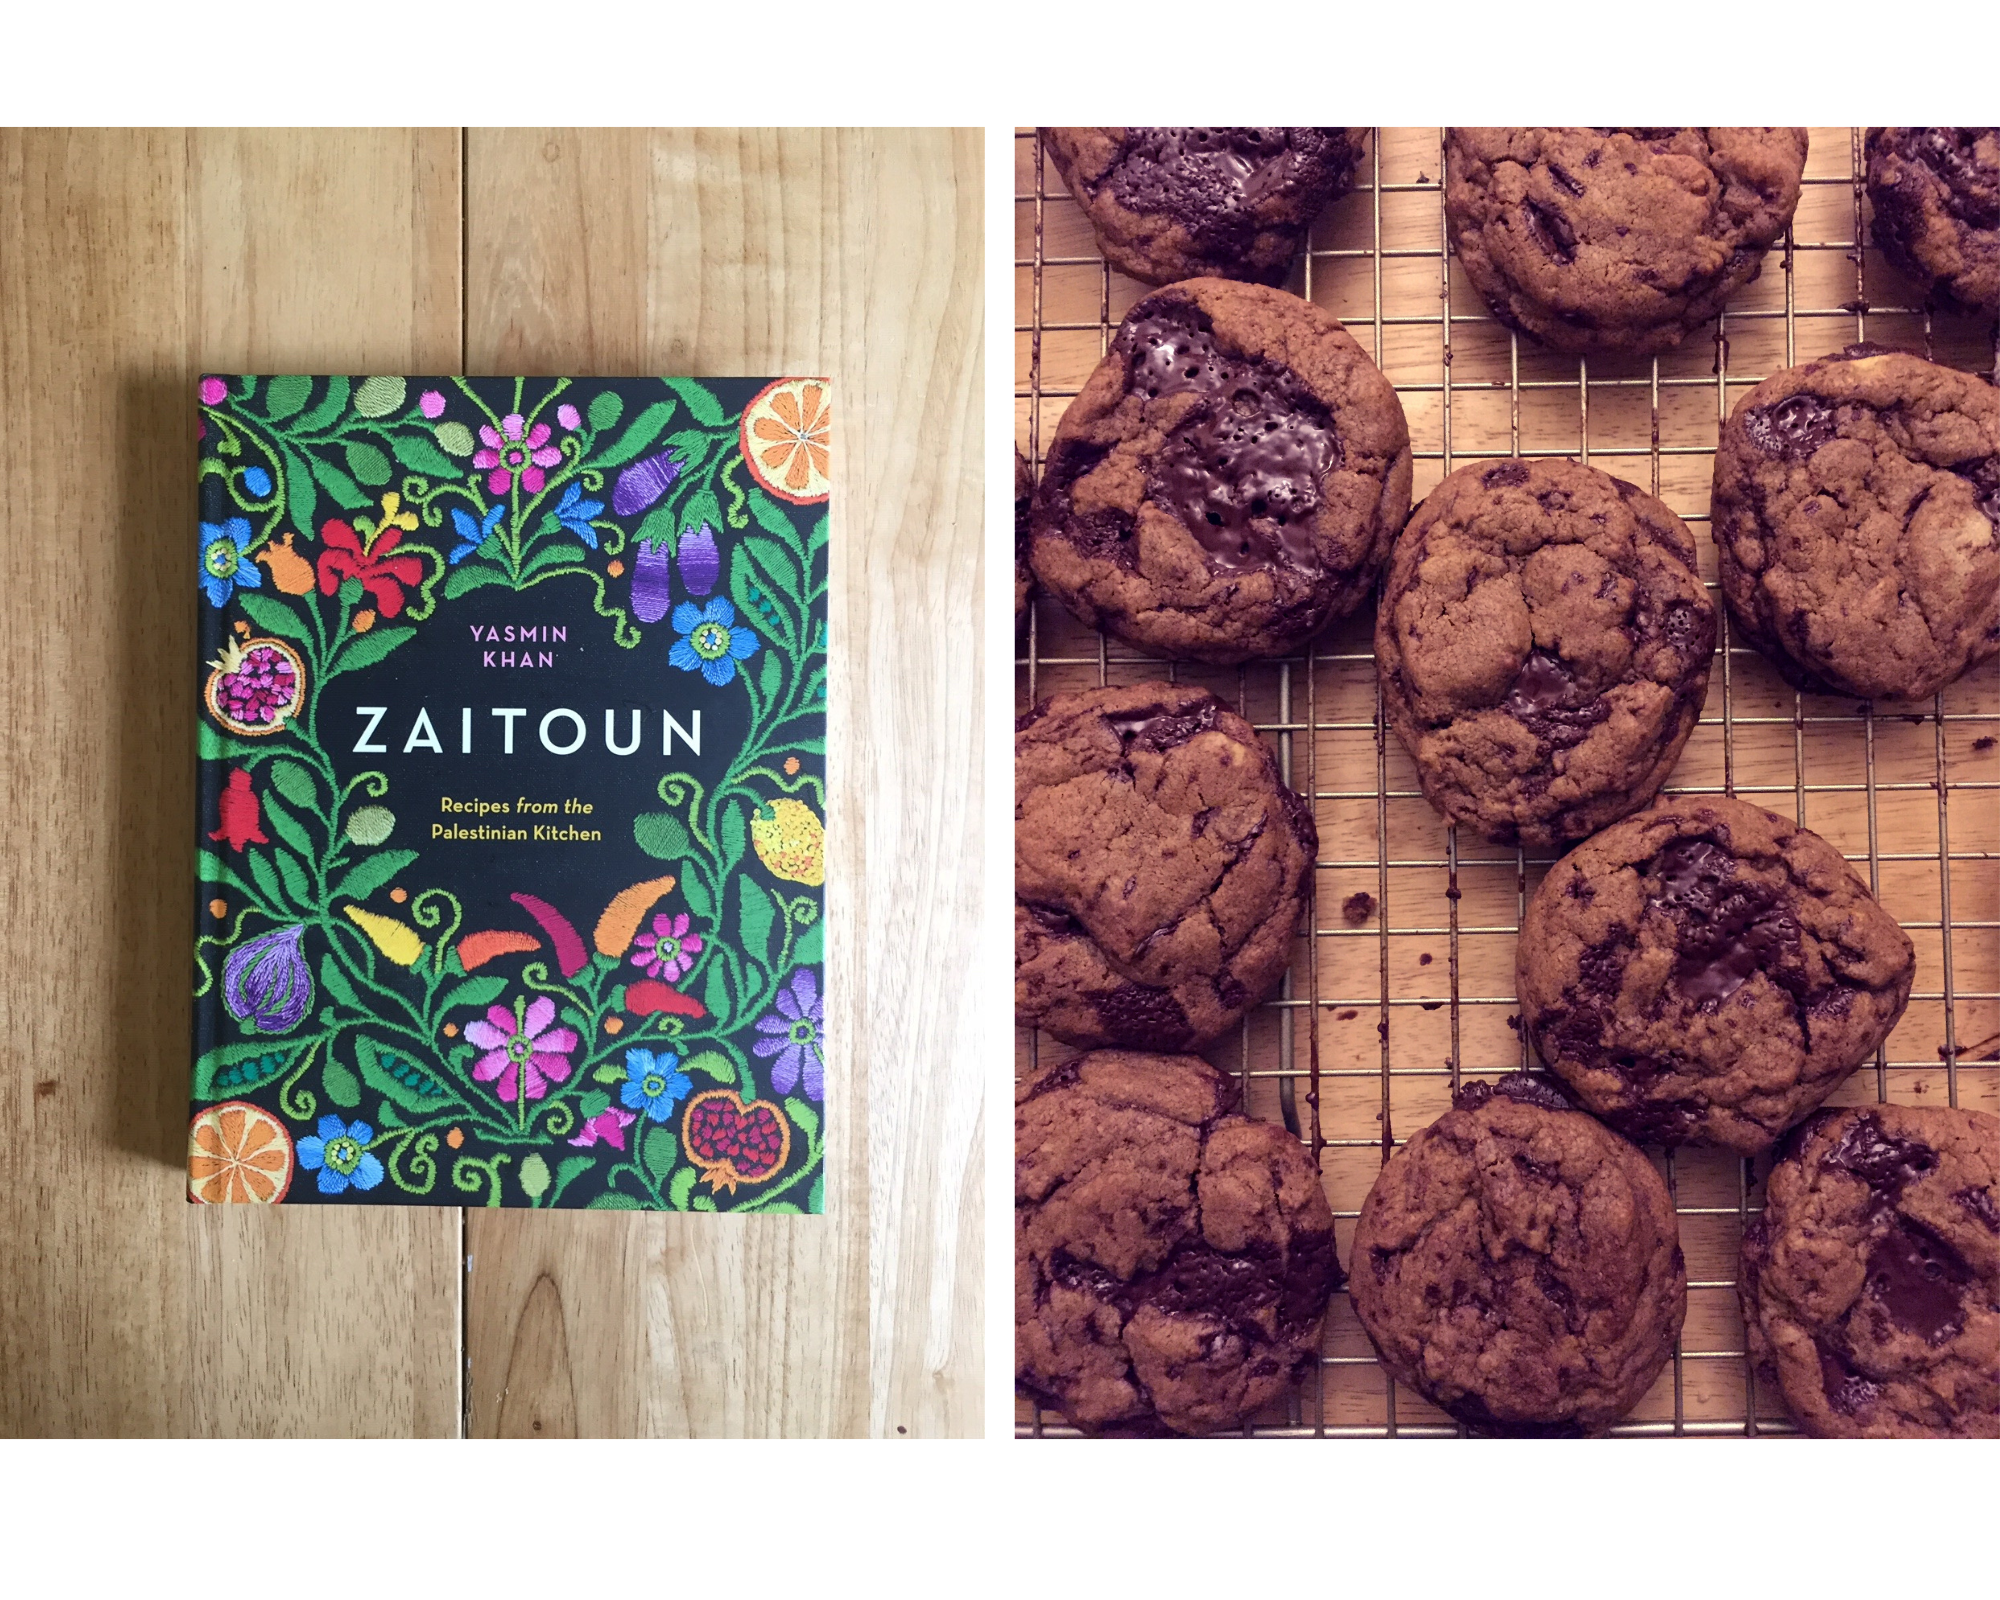 "Yasmine Khan's cookbook, ""Zaitoun: Recipes and Stories from the Palestinian Kitchen"" on the left, chocolate tahini cookies on a cooling rack on the right"